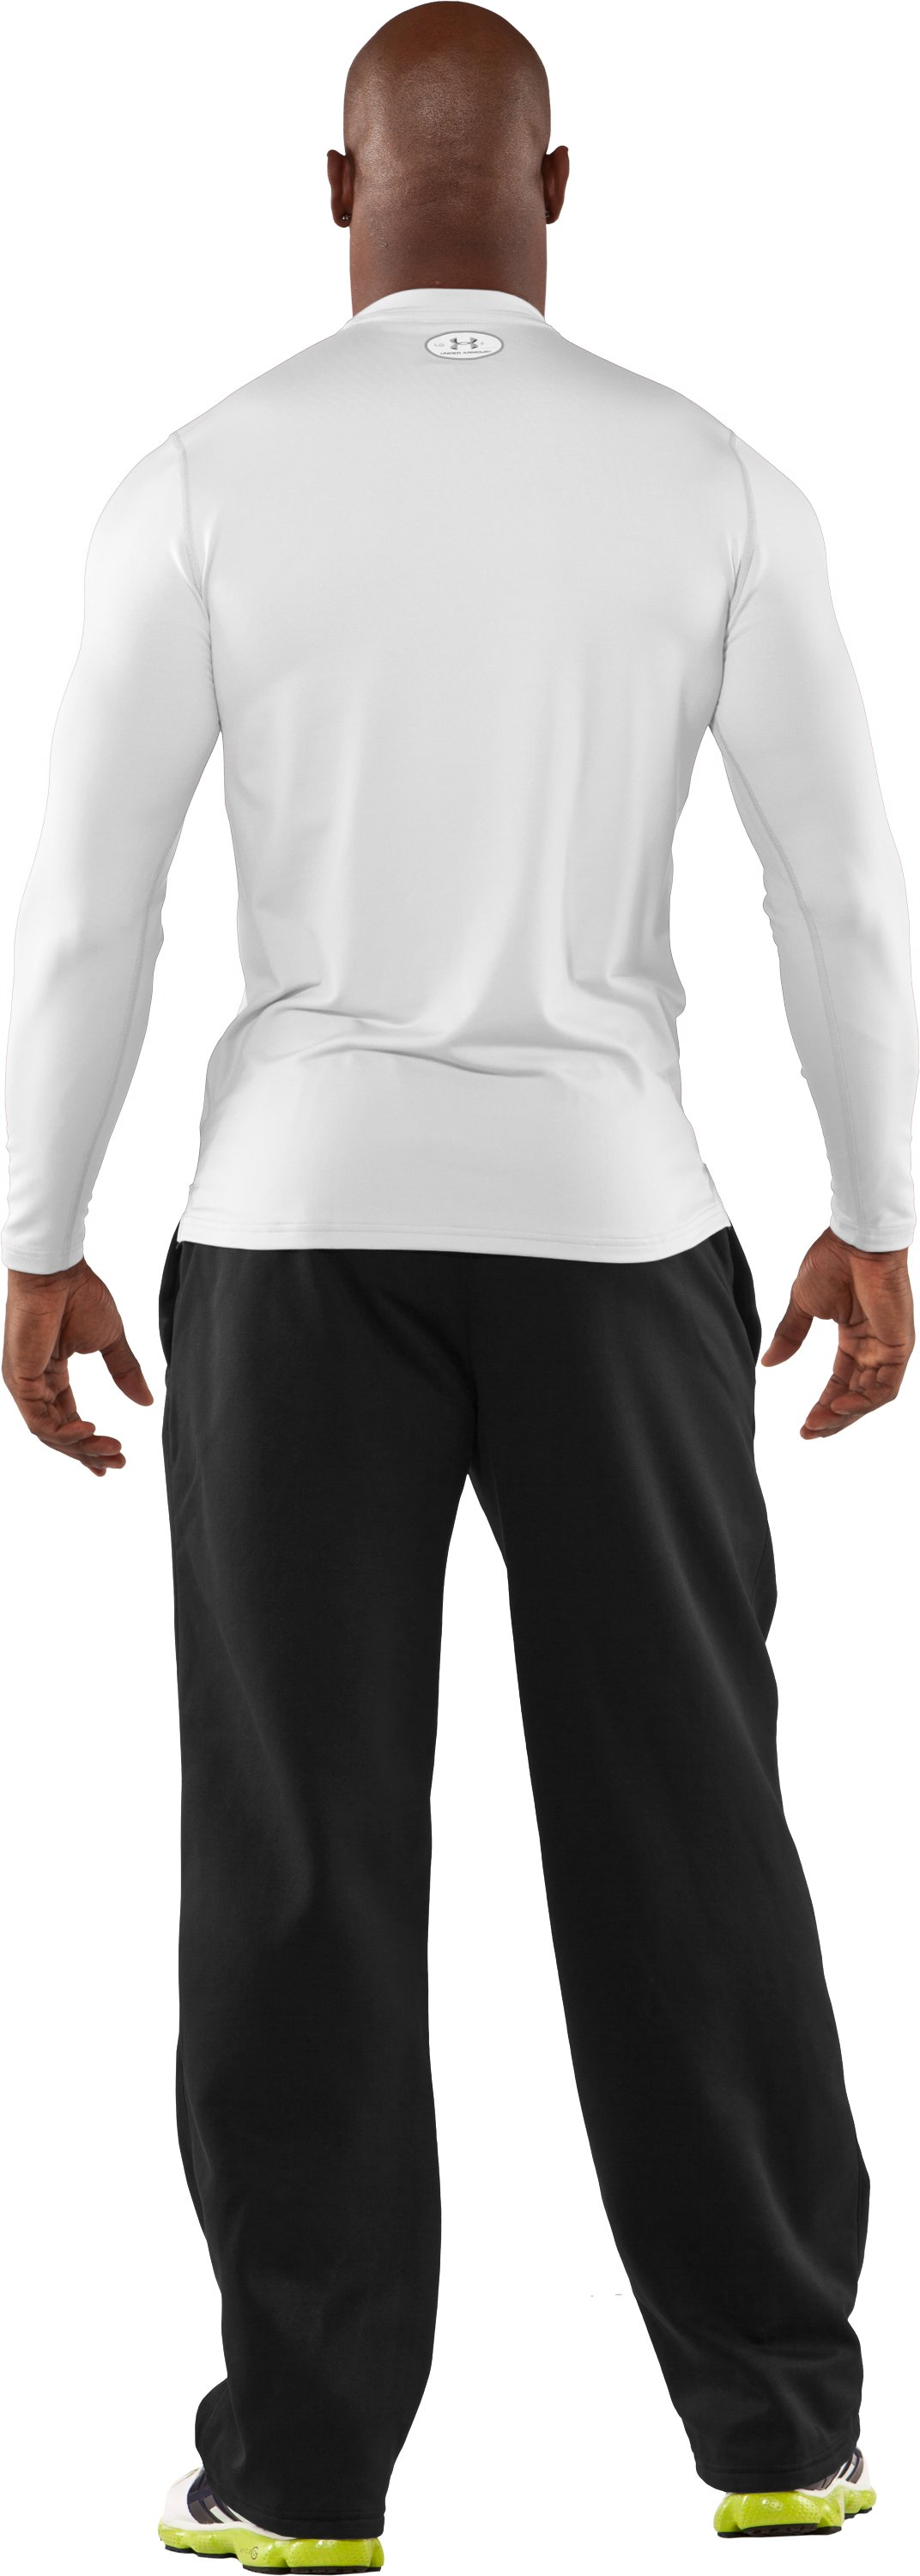 Men's ColdGear® Fitted Long Sleeve Crew, White, Back